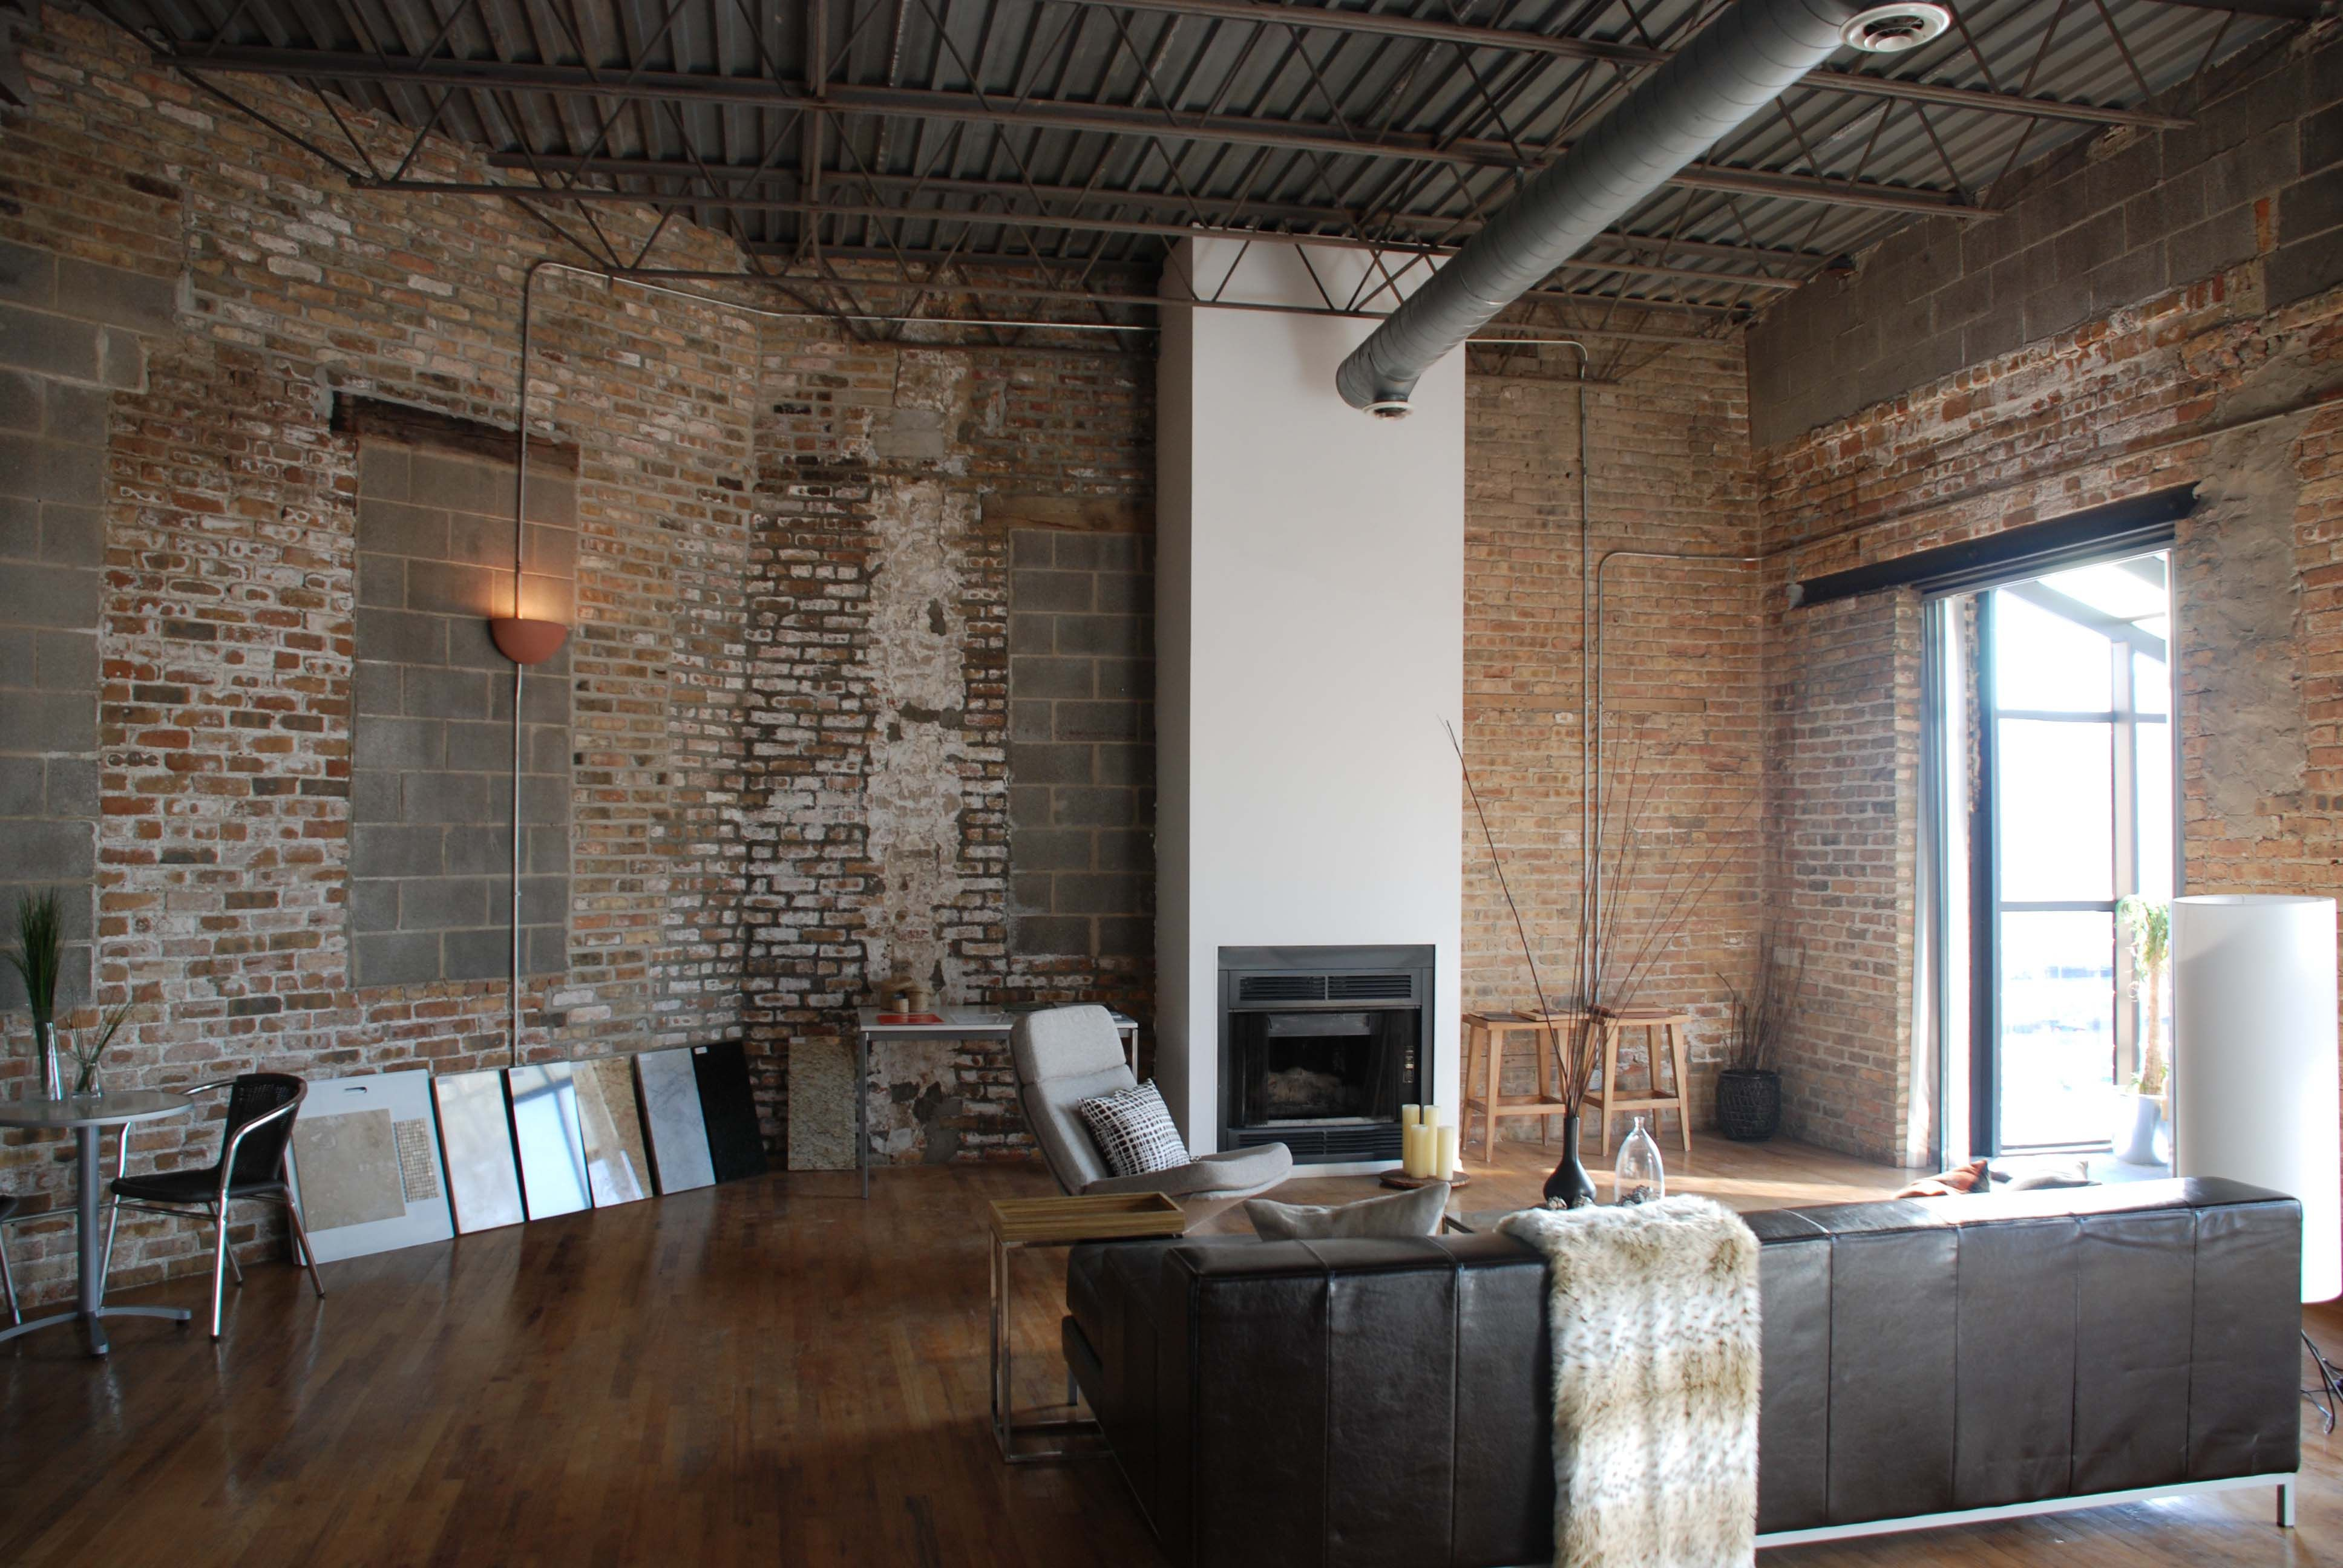 In Addition To Standard Features Such As Exposed Brick And Ductwork